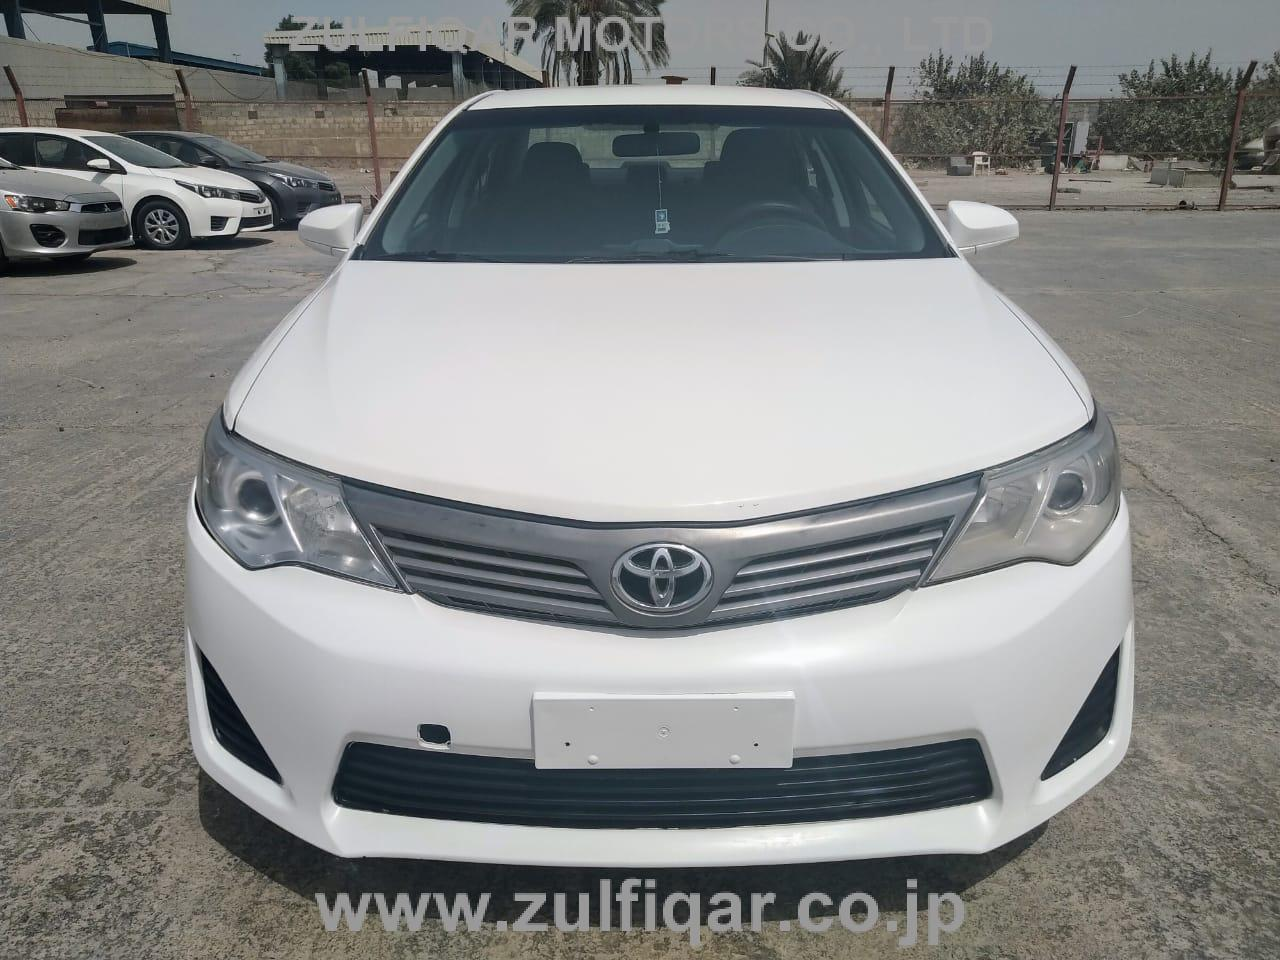 TOYOTA CAMRY 2014 Image 1